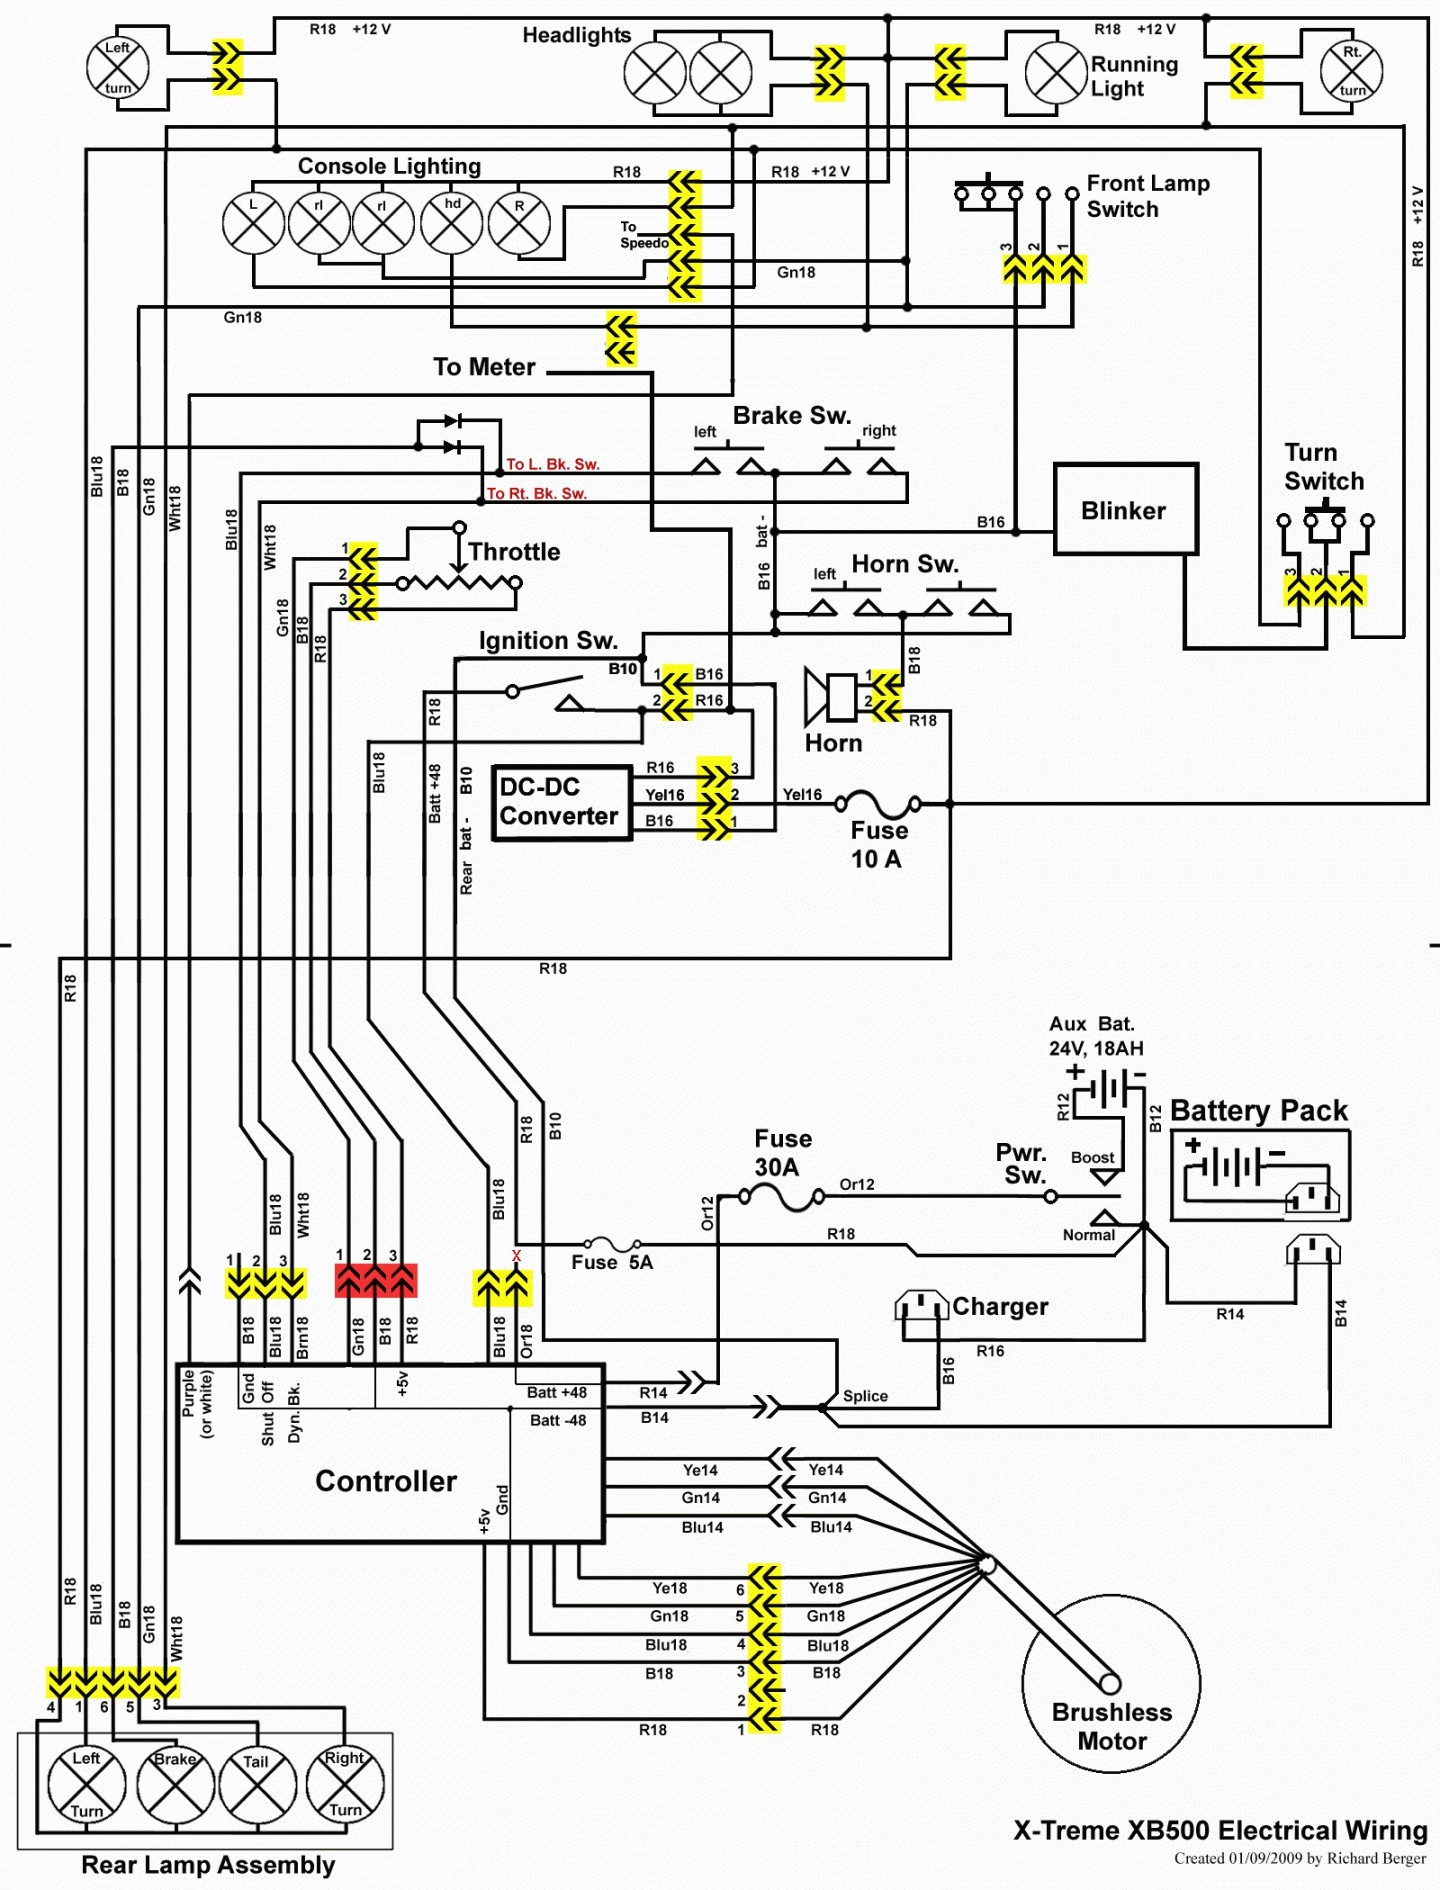 Scooter Ignition Switch Wiring Diagram from i0.wp.com